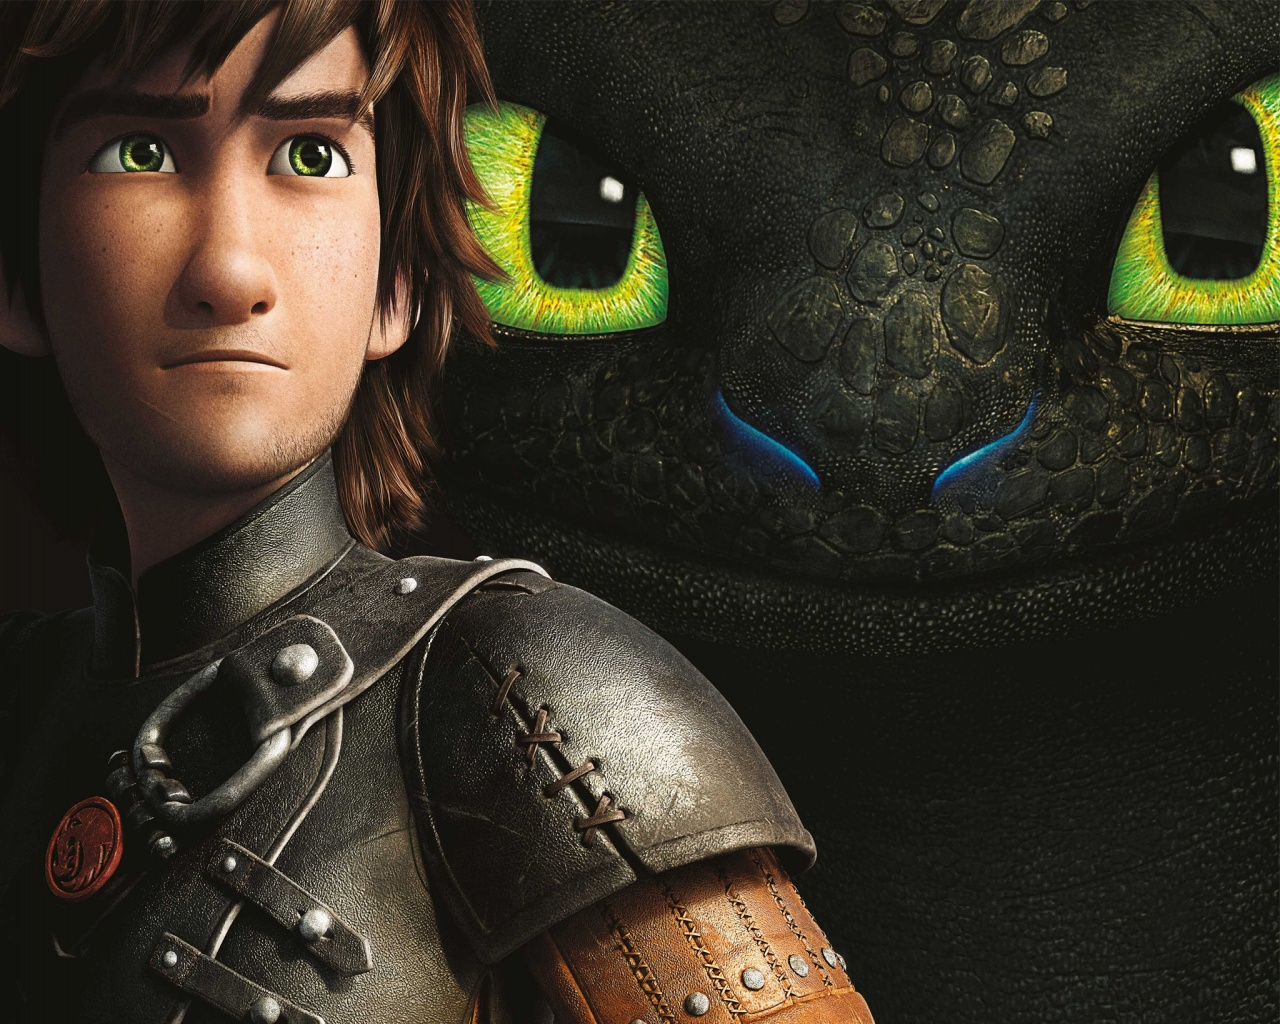 How to train your dragon 2 wallpapers in jpg format for - How to train your dragon hd download ...